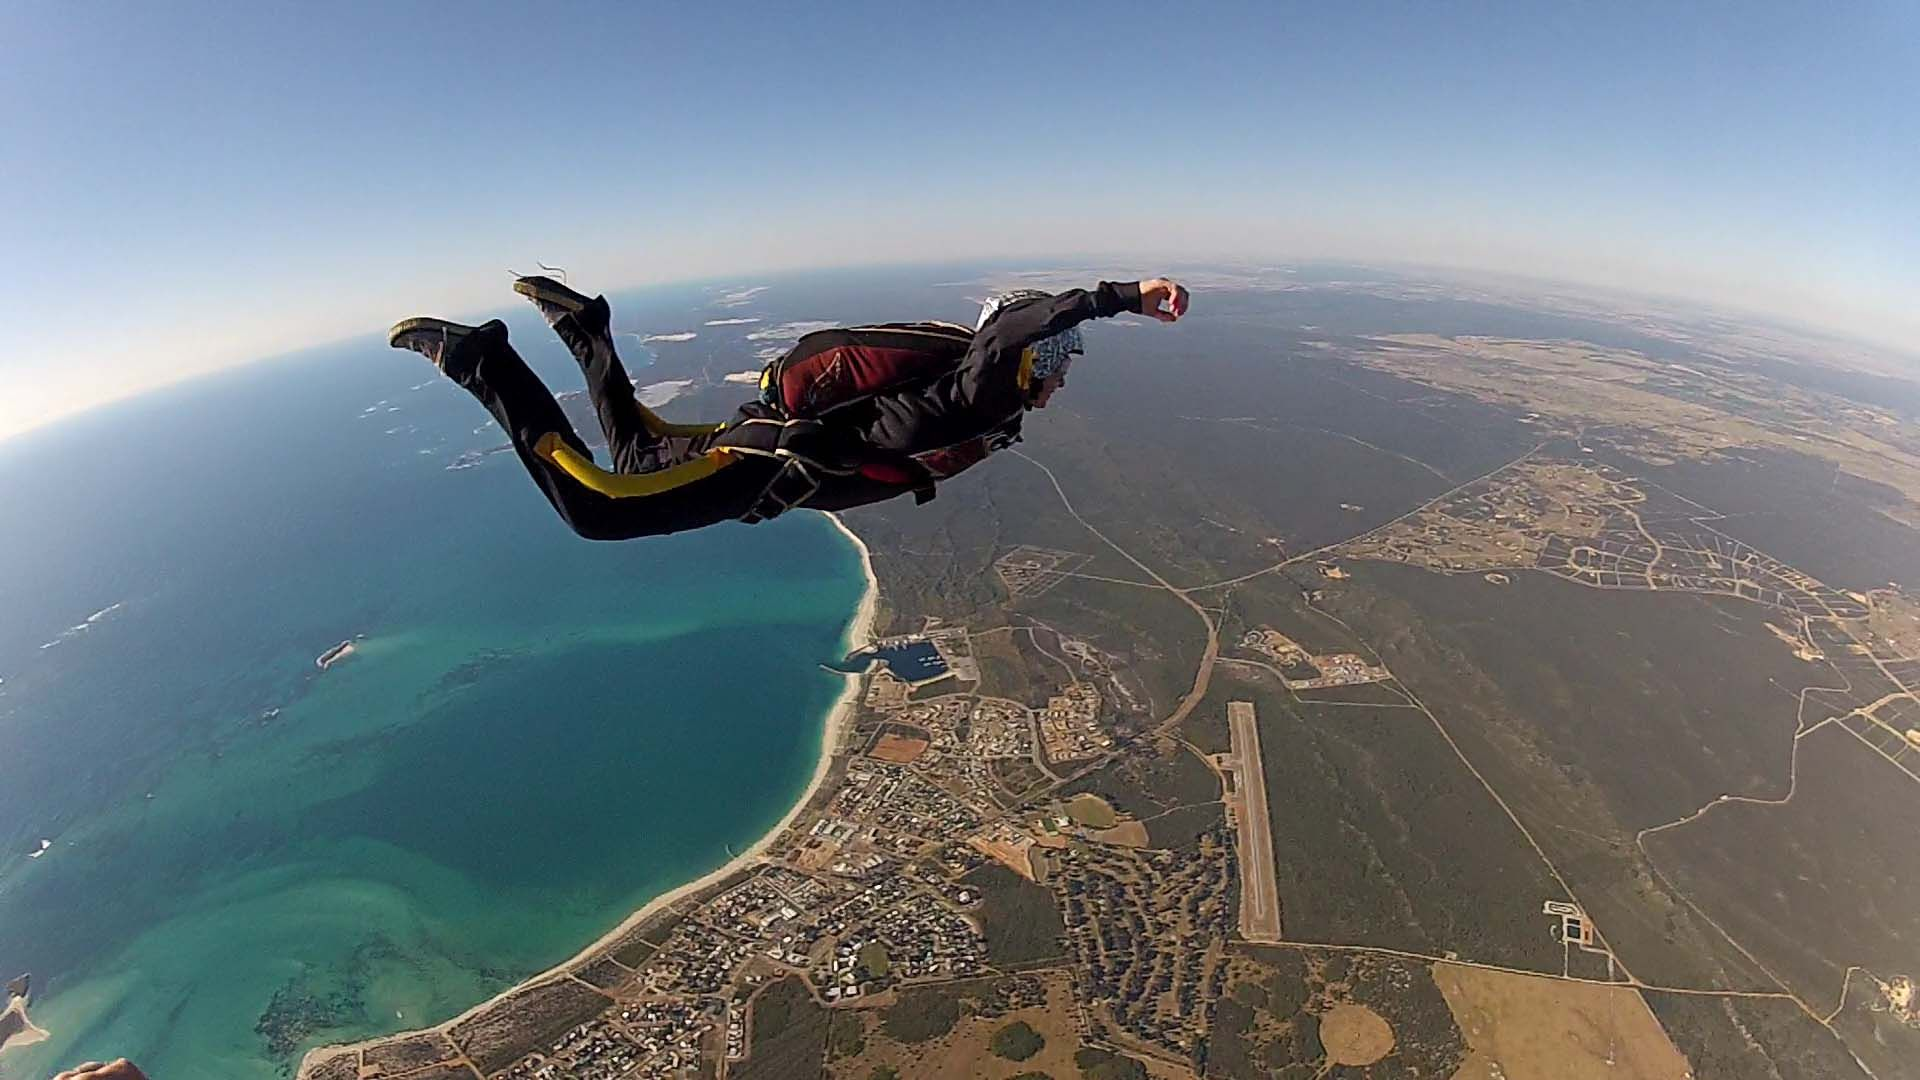 bungee jumping or sky diving Tandem sky diving tandem paragliding bungee jumping land adventures take on the south african terrain sandboarding downhill adventures shop 1.